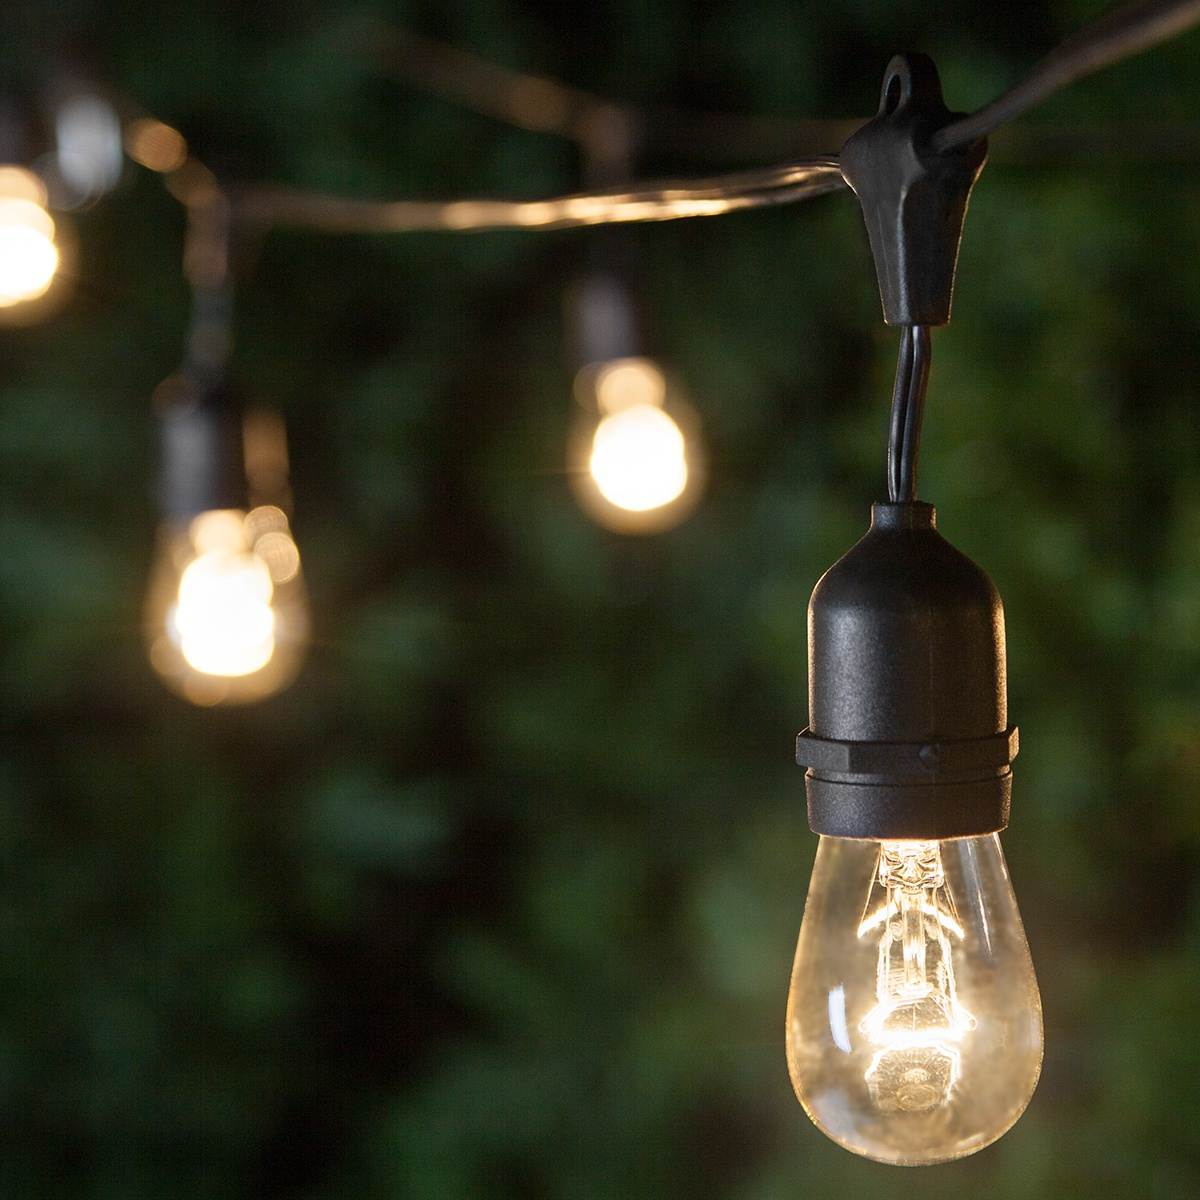 Patio lights commercial clear patio string lights 24 for Outside lawn lights